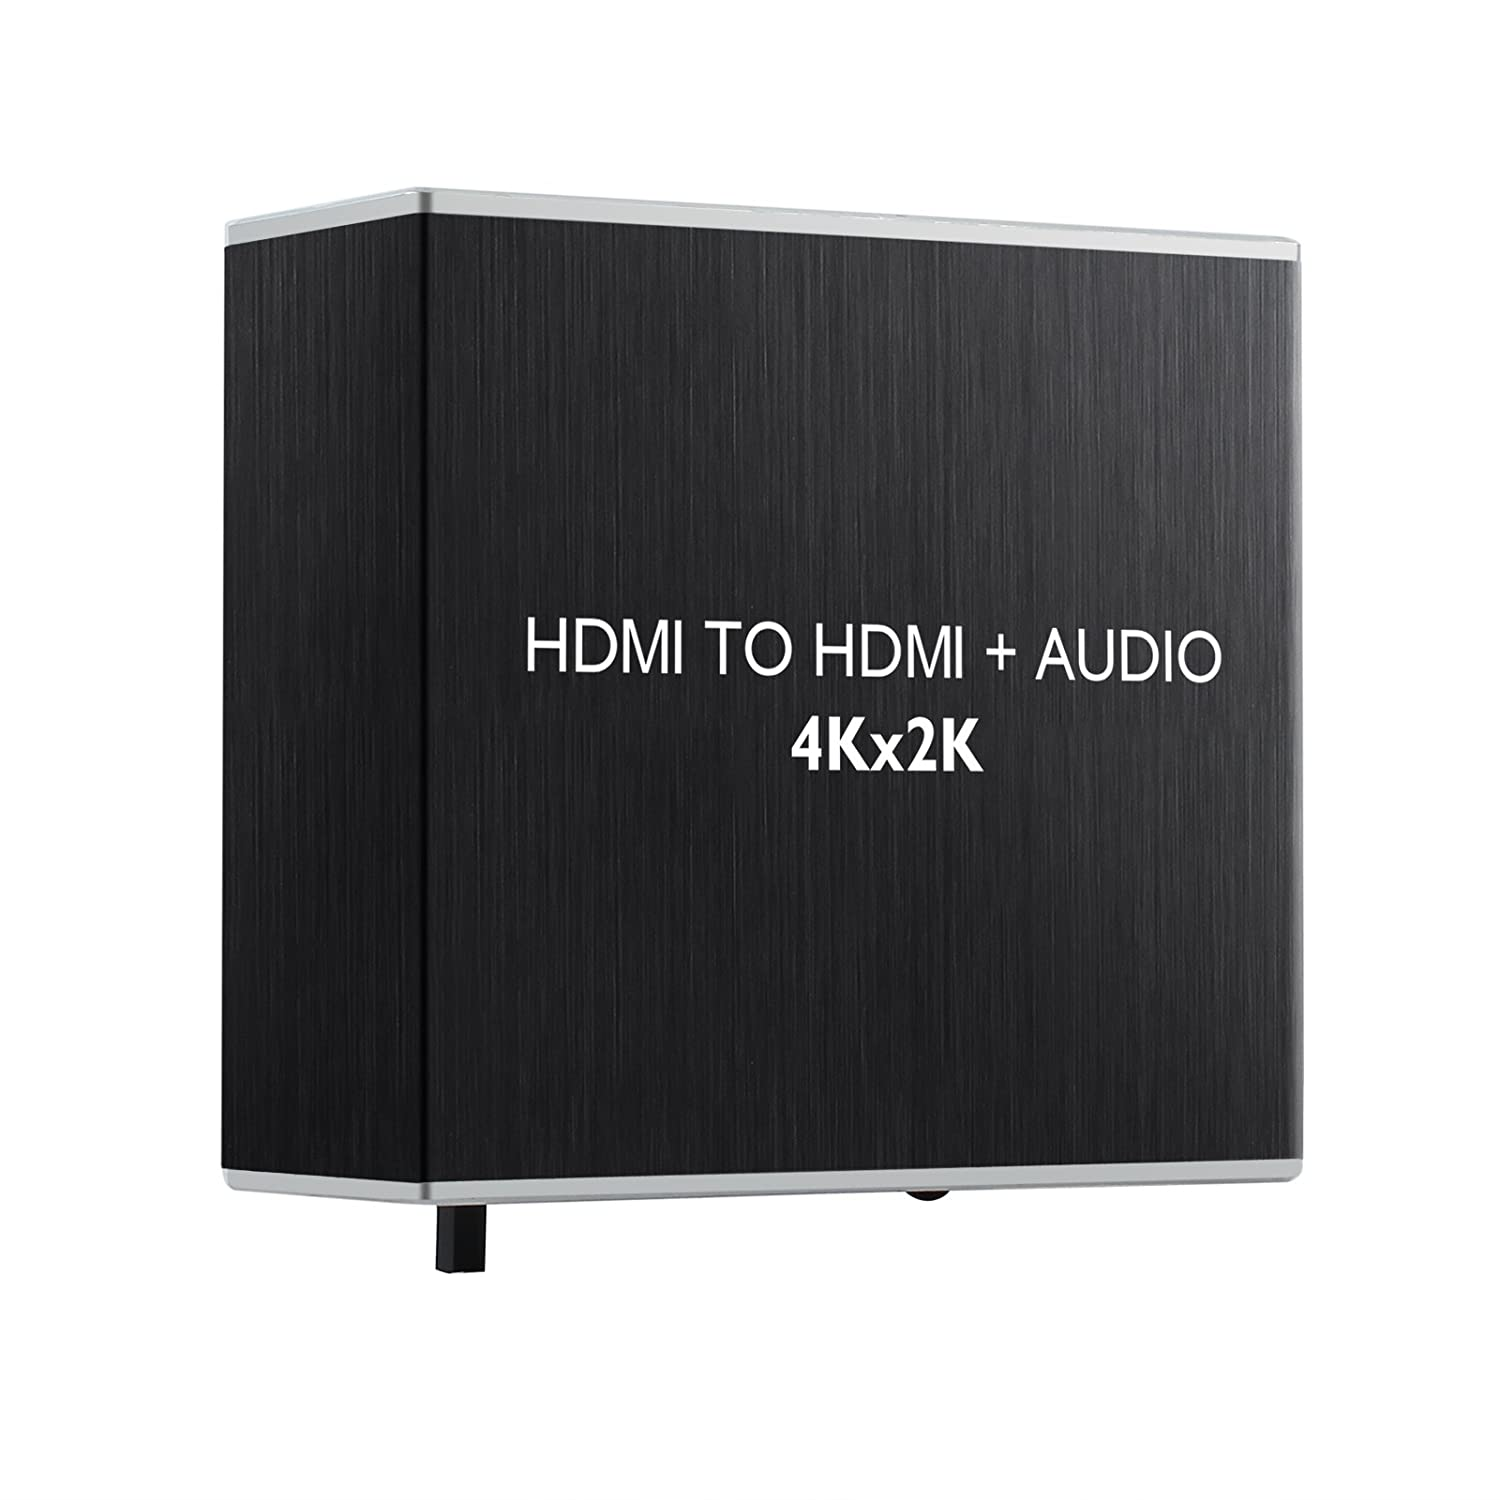 LiNKFOR HDMI 1.4 Audio Extractor Support 4K 3D HDMI to HDMI and Digital Optical Toslink SPDIF 3.5mm Stereo Audio Extractor with 3.5mm to RCA Stereo Audio Cable Compatible with HDTV Xbox PS4 PS3 Etc